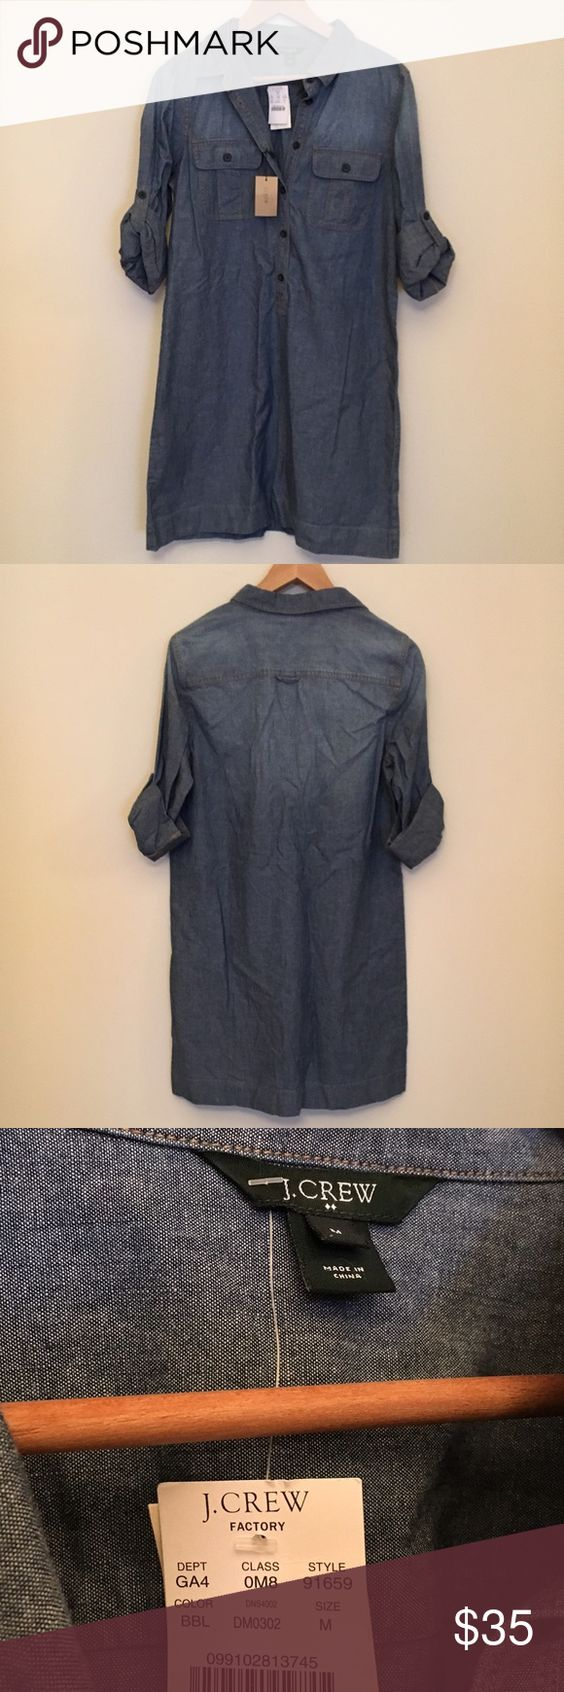 """J. Crew Classic Chambray Dress NWT Chambray Dress. Length from shoulders- 36"""" Waist-40"""" J. Crew Dresses"""